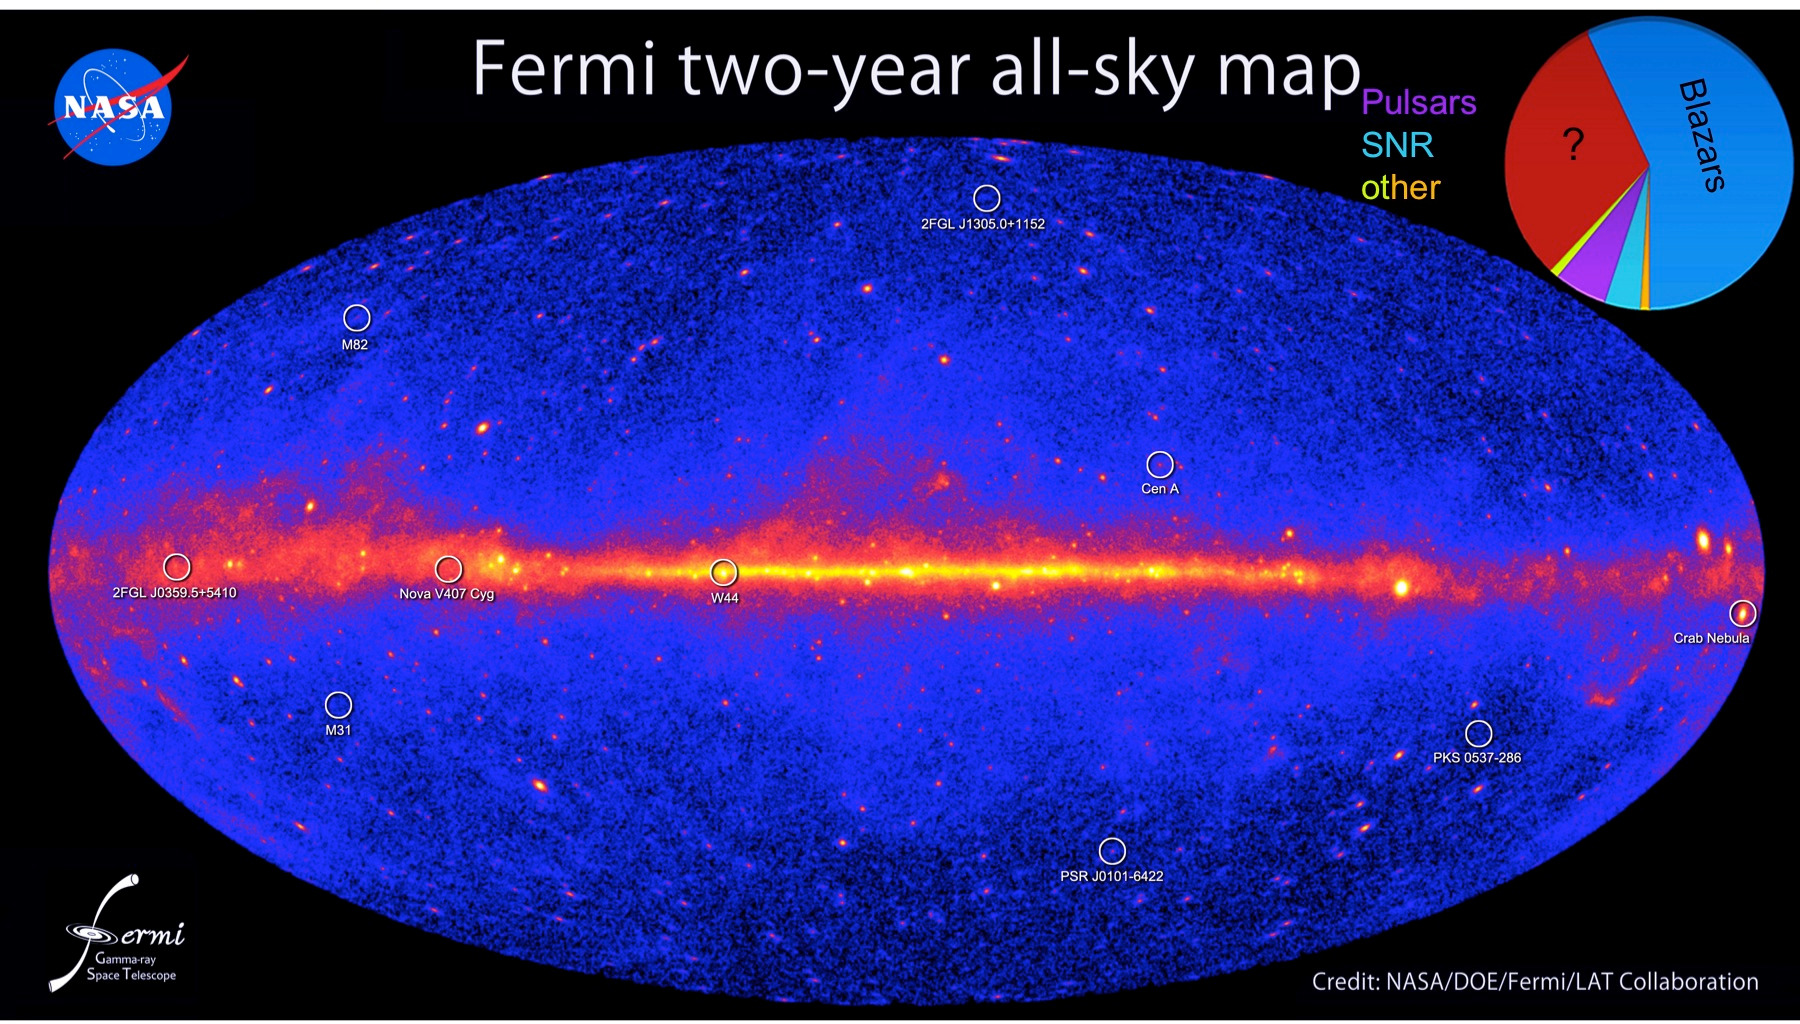 Fermi LAT 2 year all sky map